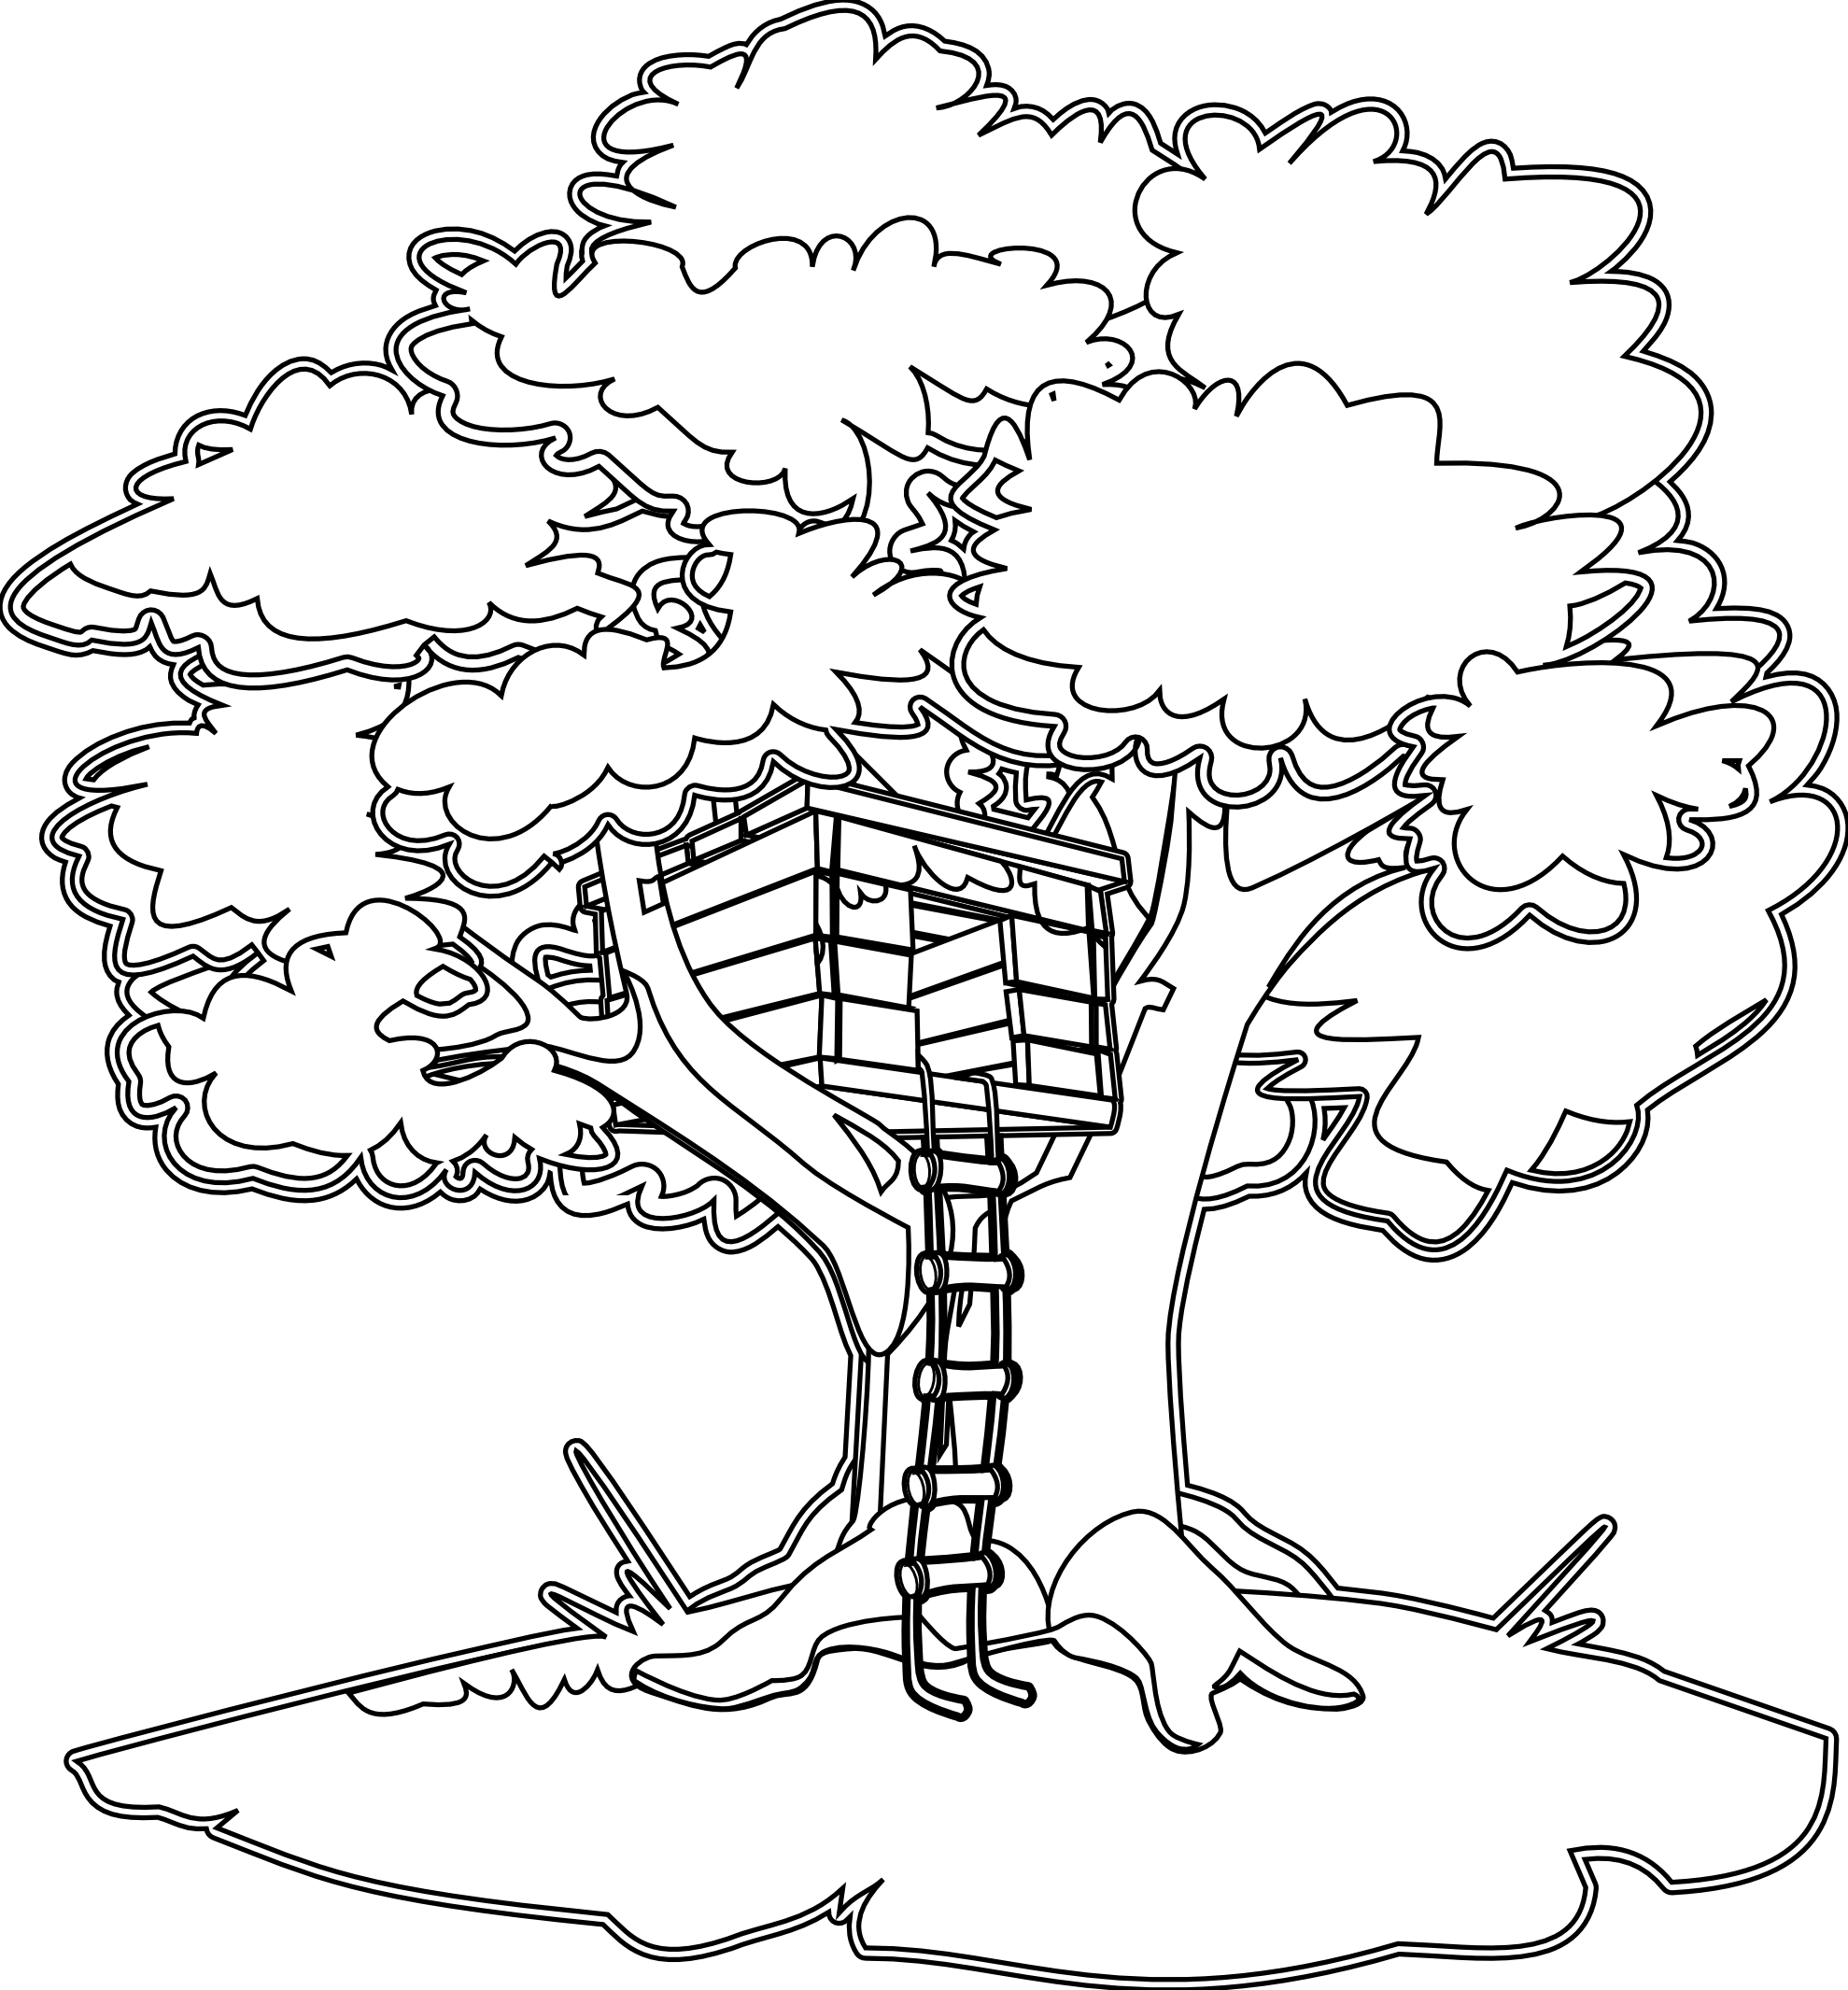 home coloring page gingerbread house coloring pages to download and print for home page coloring